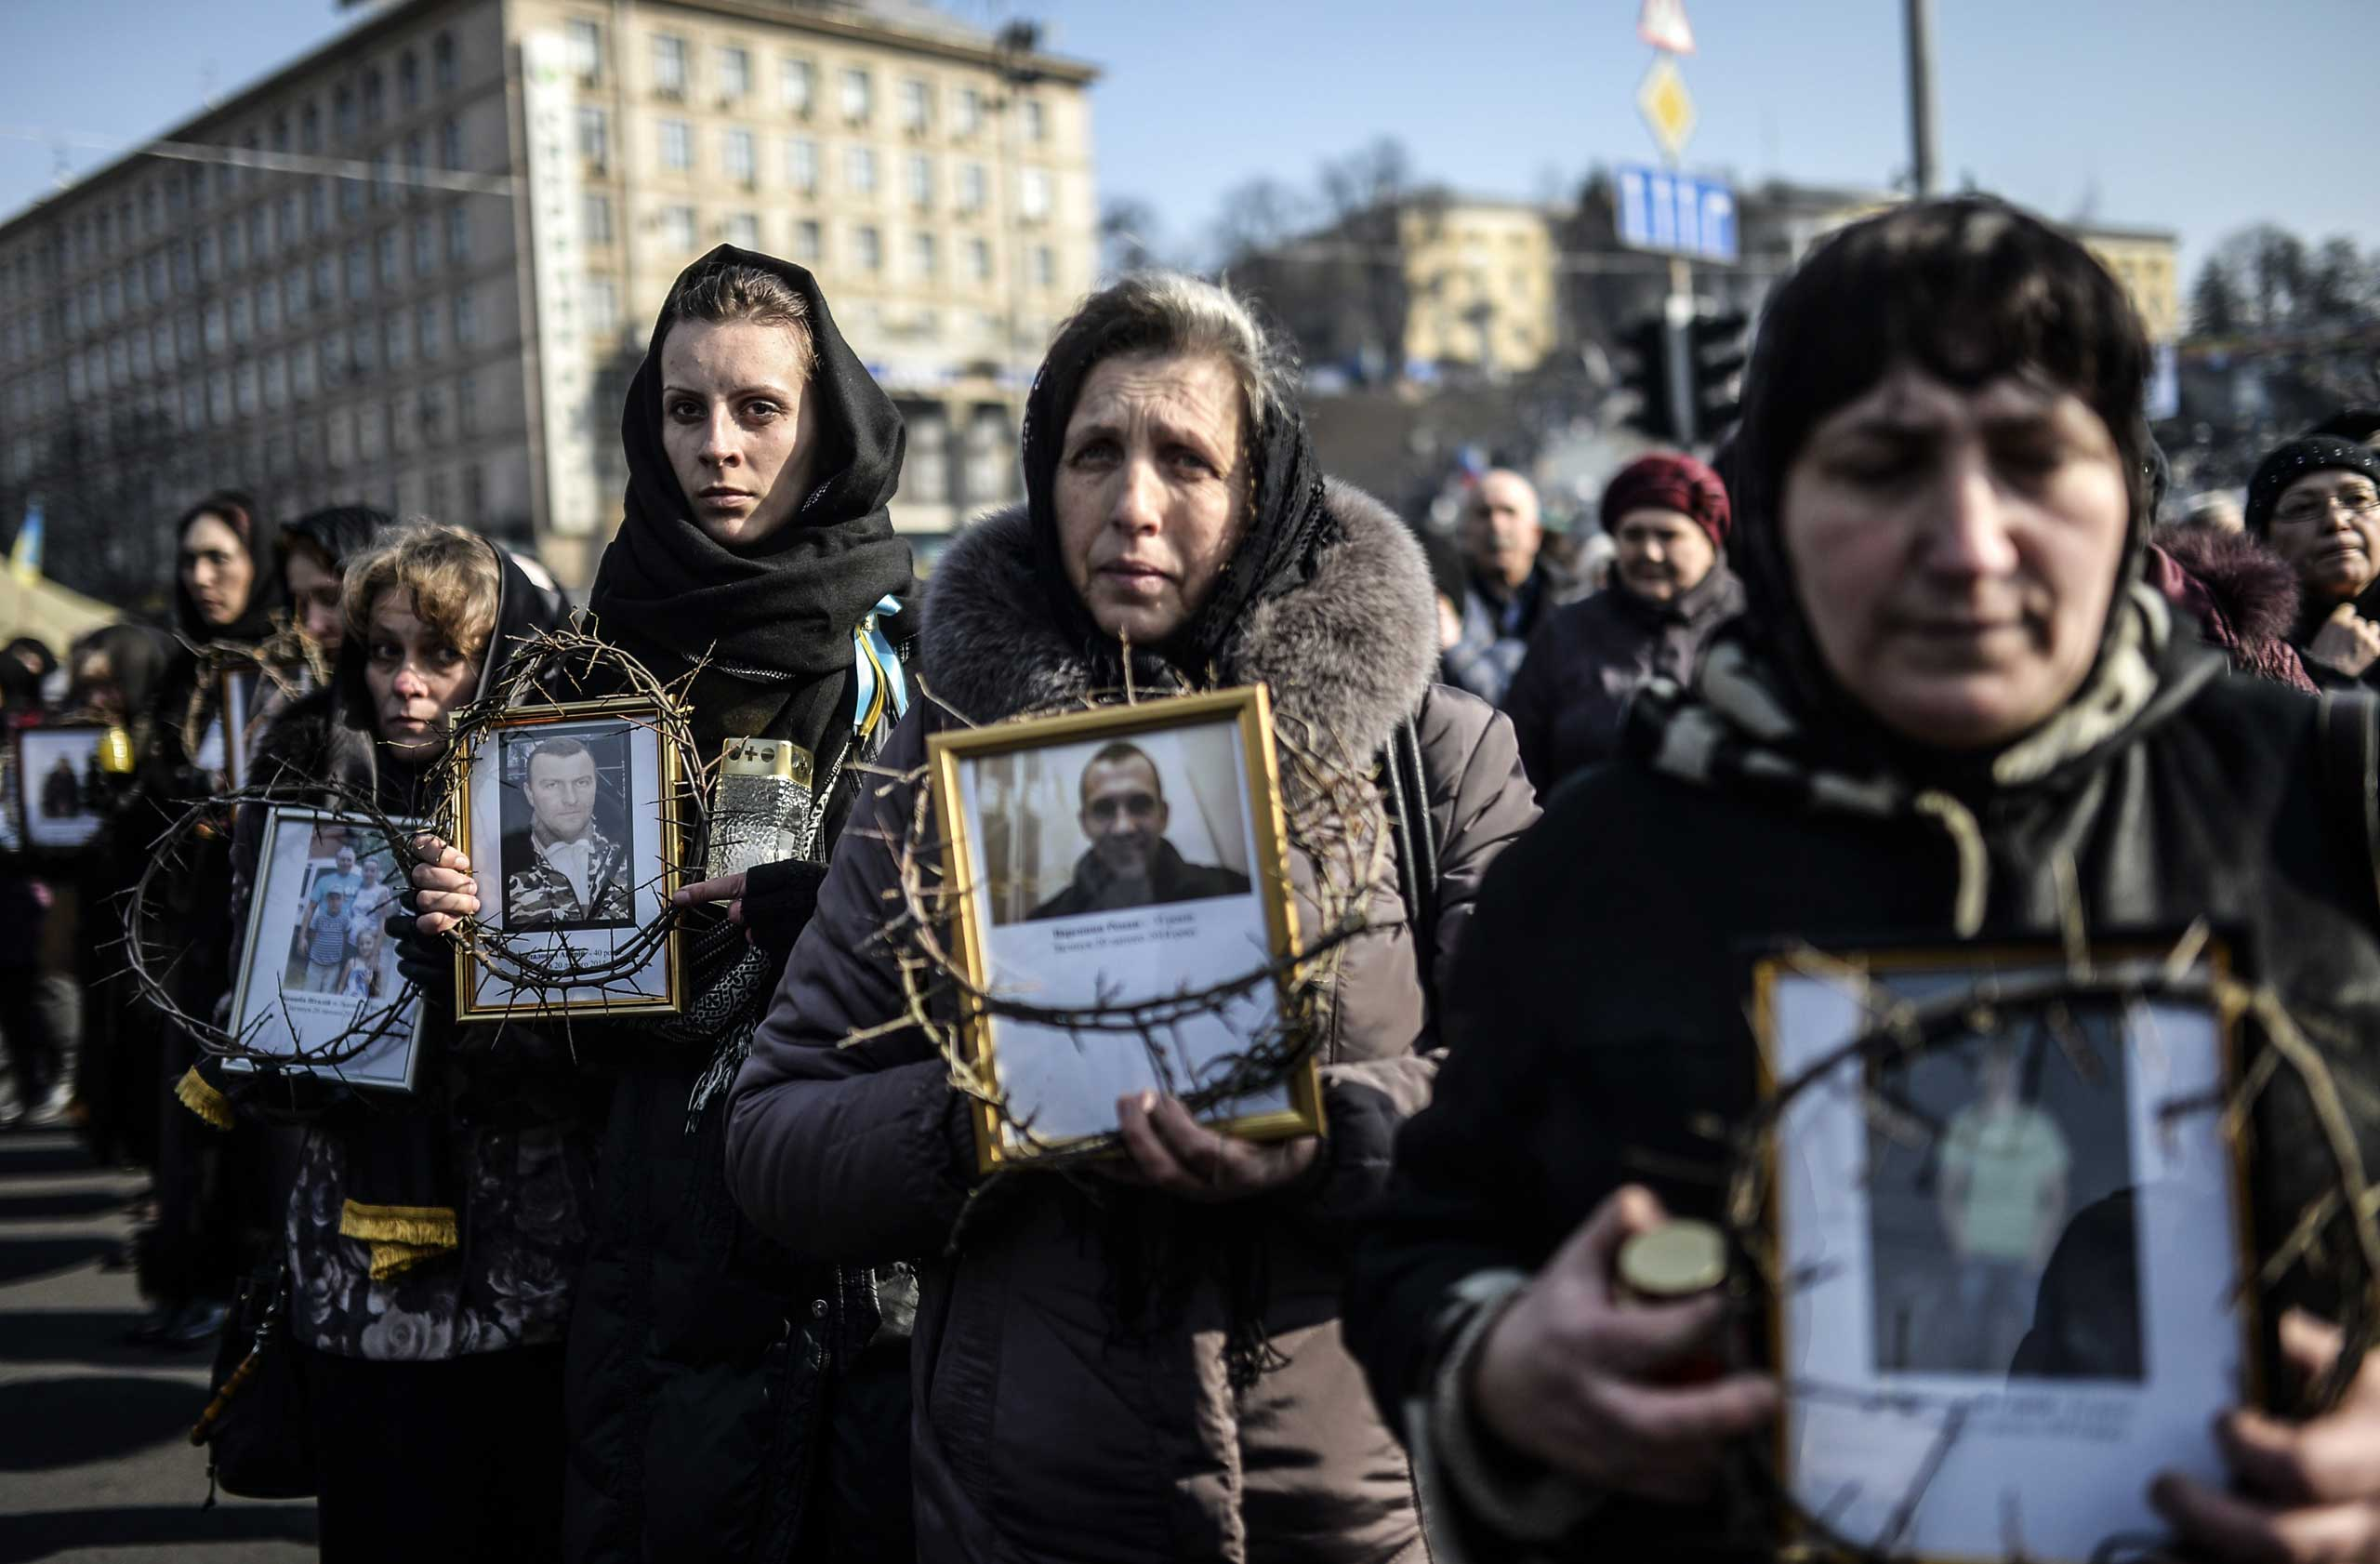 Women hold pictures of protesters who were killed in clashes with police during demonstrations in Kiev, Ukraine, on Feb. 26, 2014.